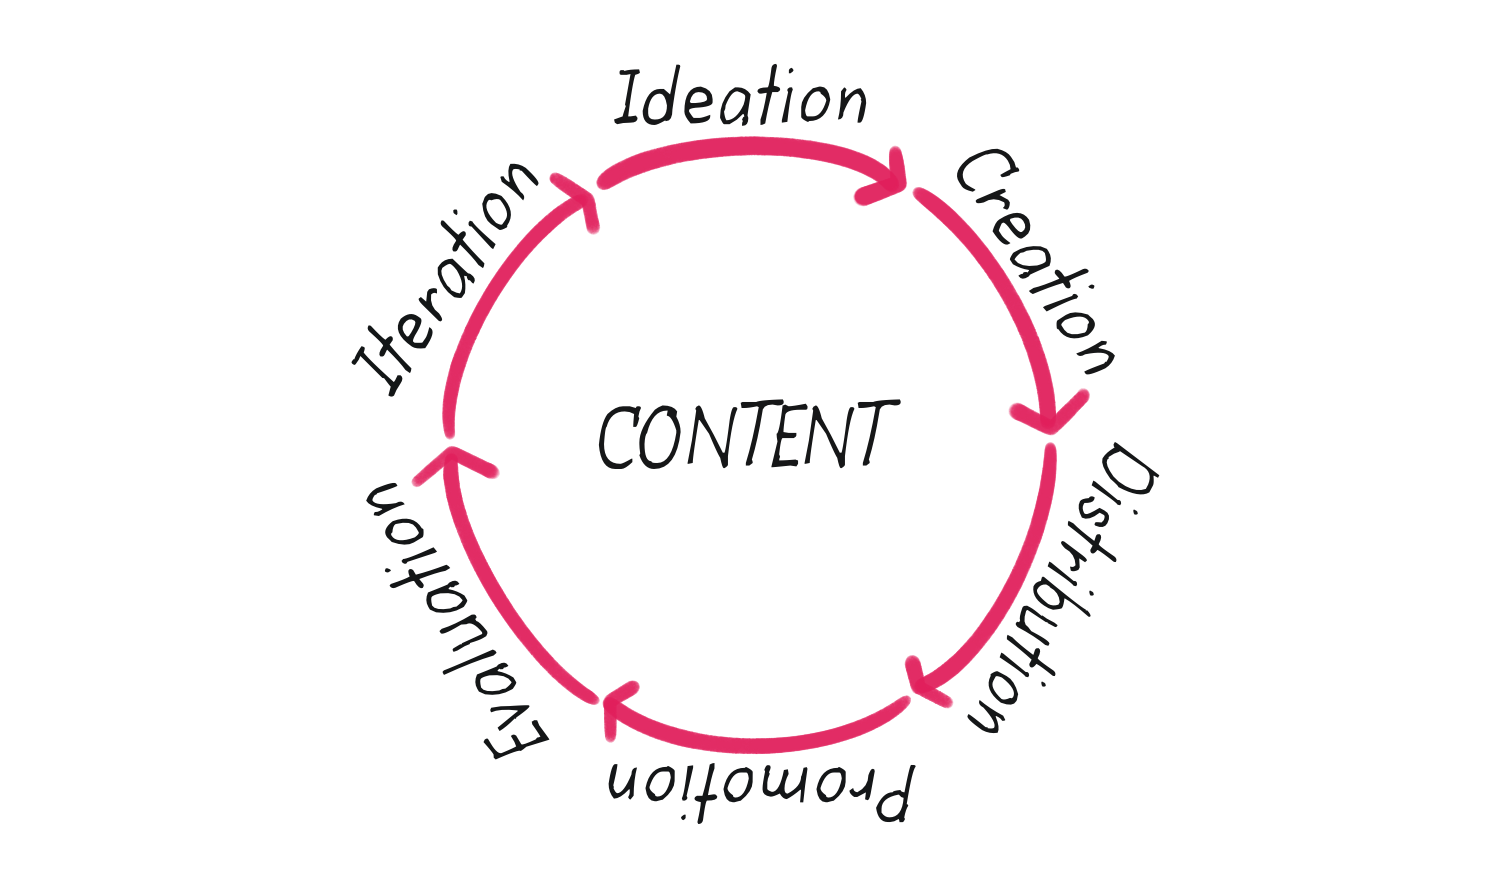 Stages of Content Production